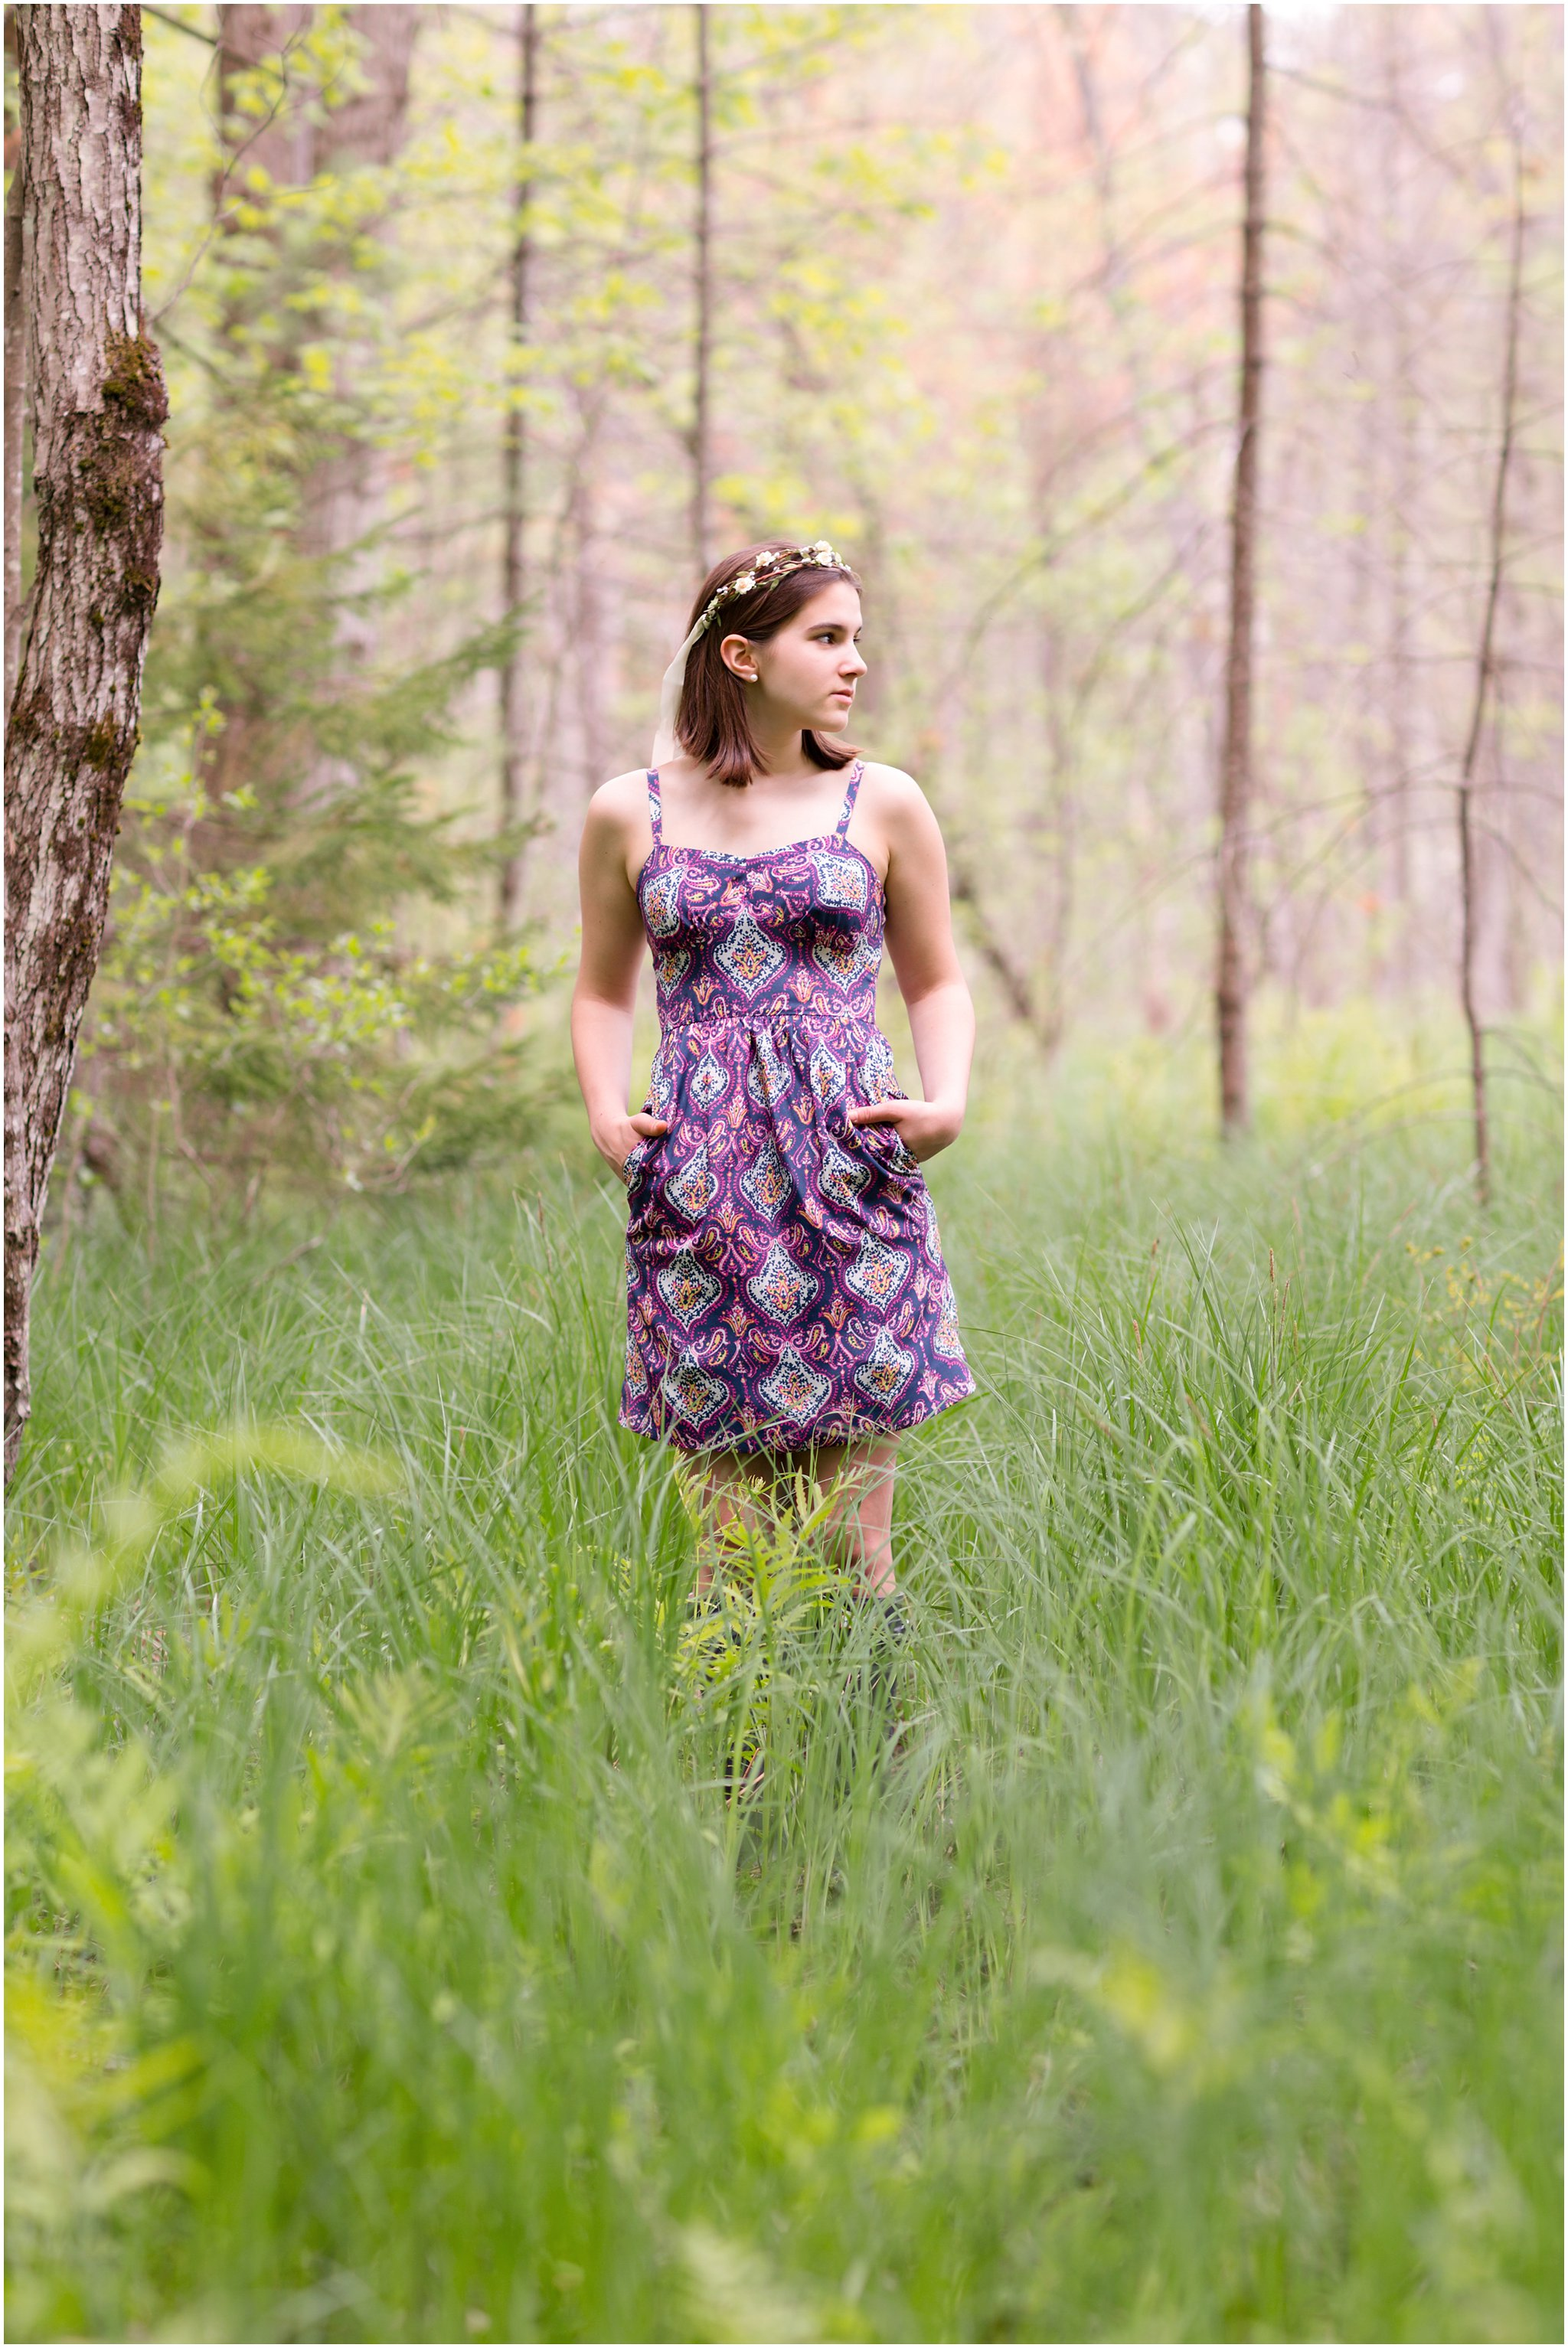 Nature Senior Photo Session